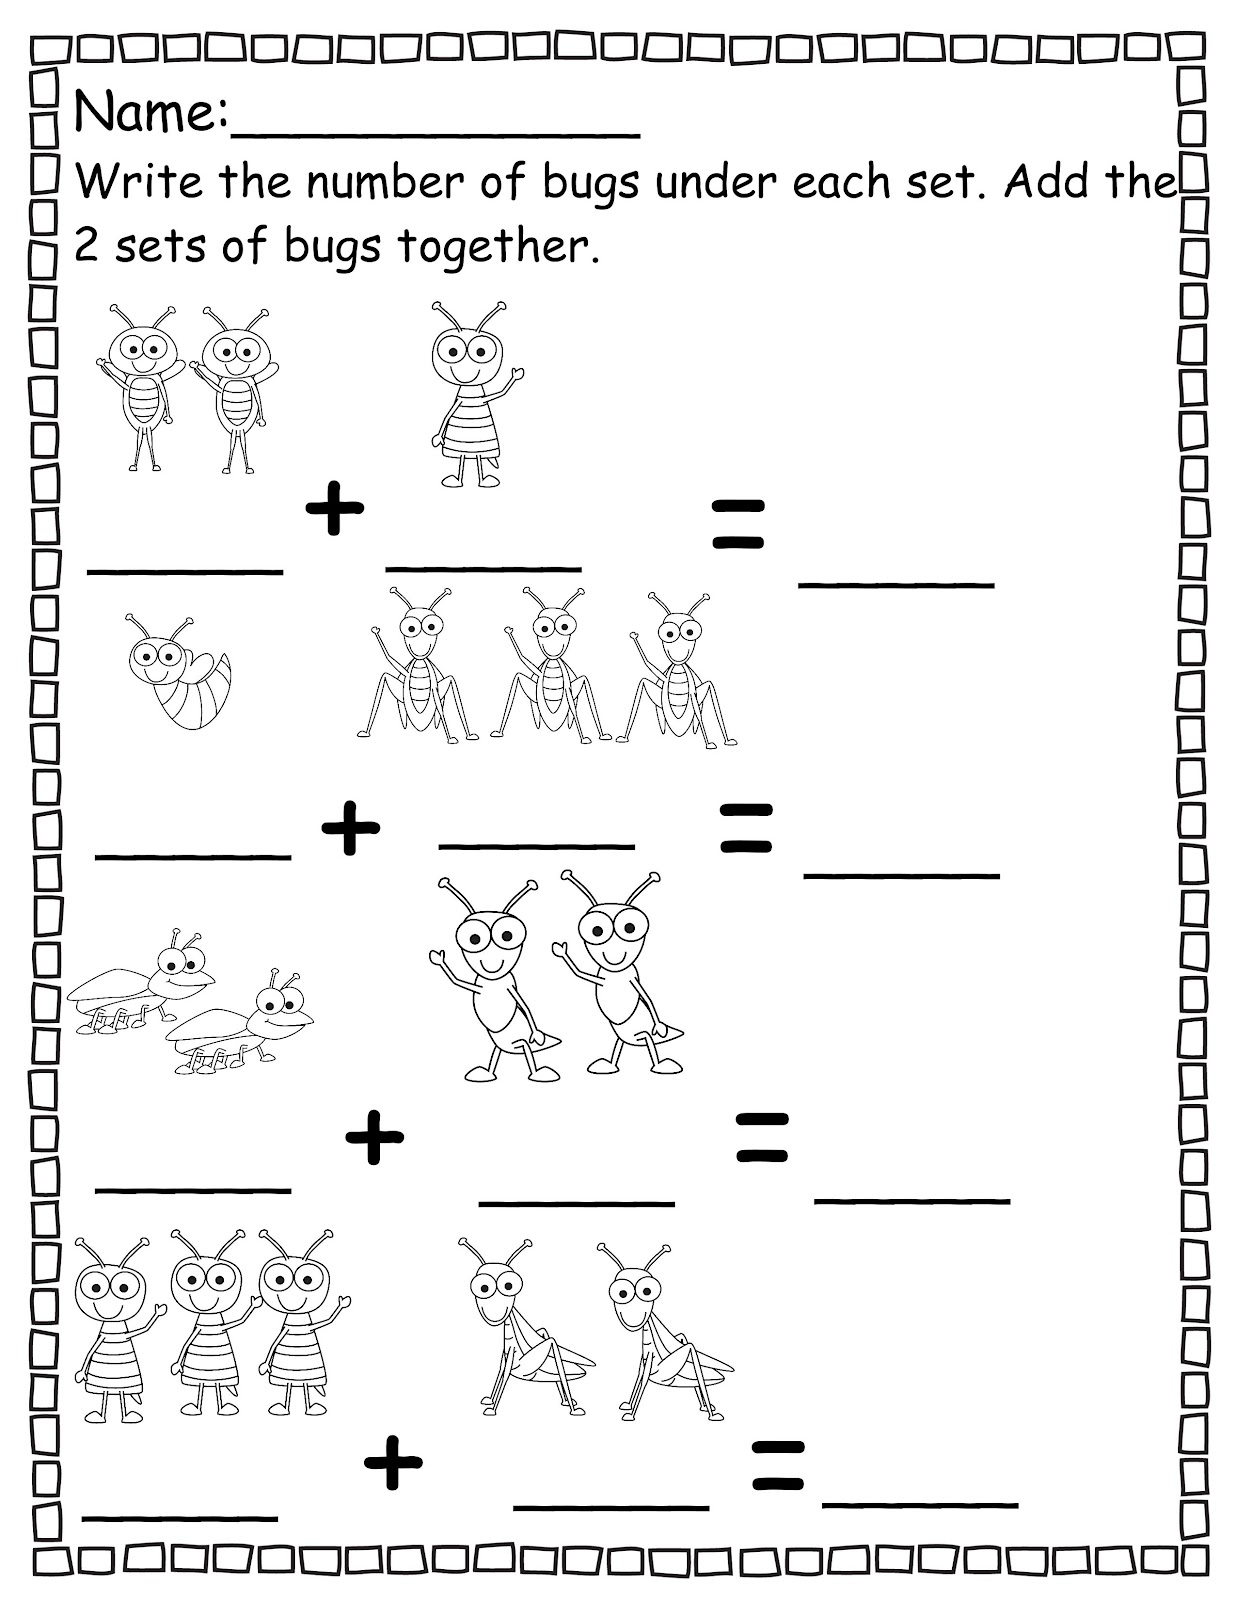 Printables Free Pre K Math Worksheets math worksheets for prek abitlikethis the crazy pre k classroom free printables